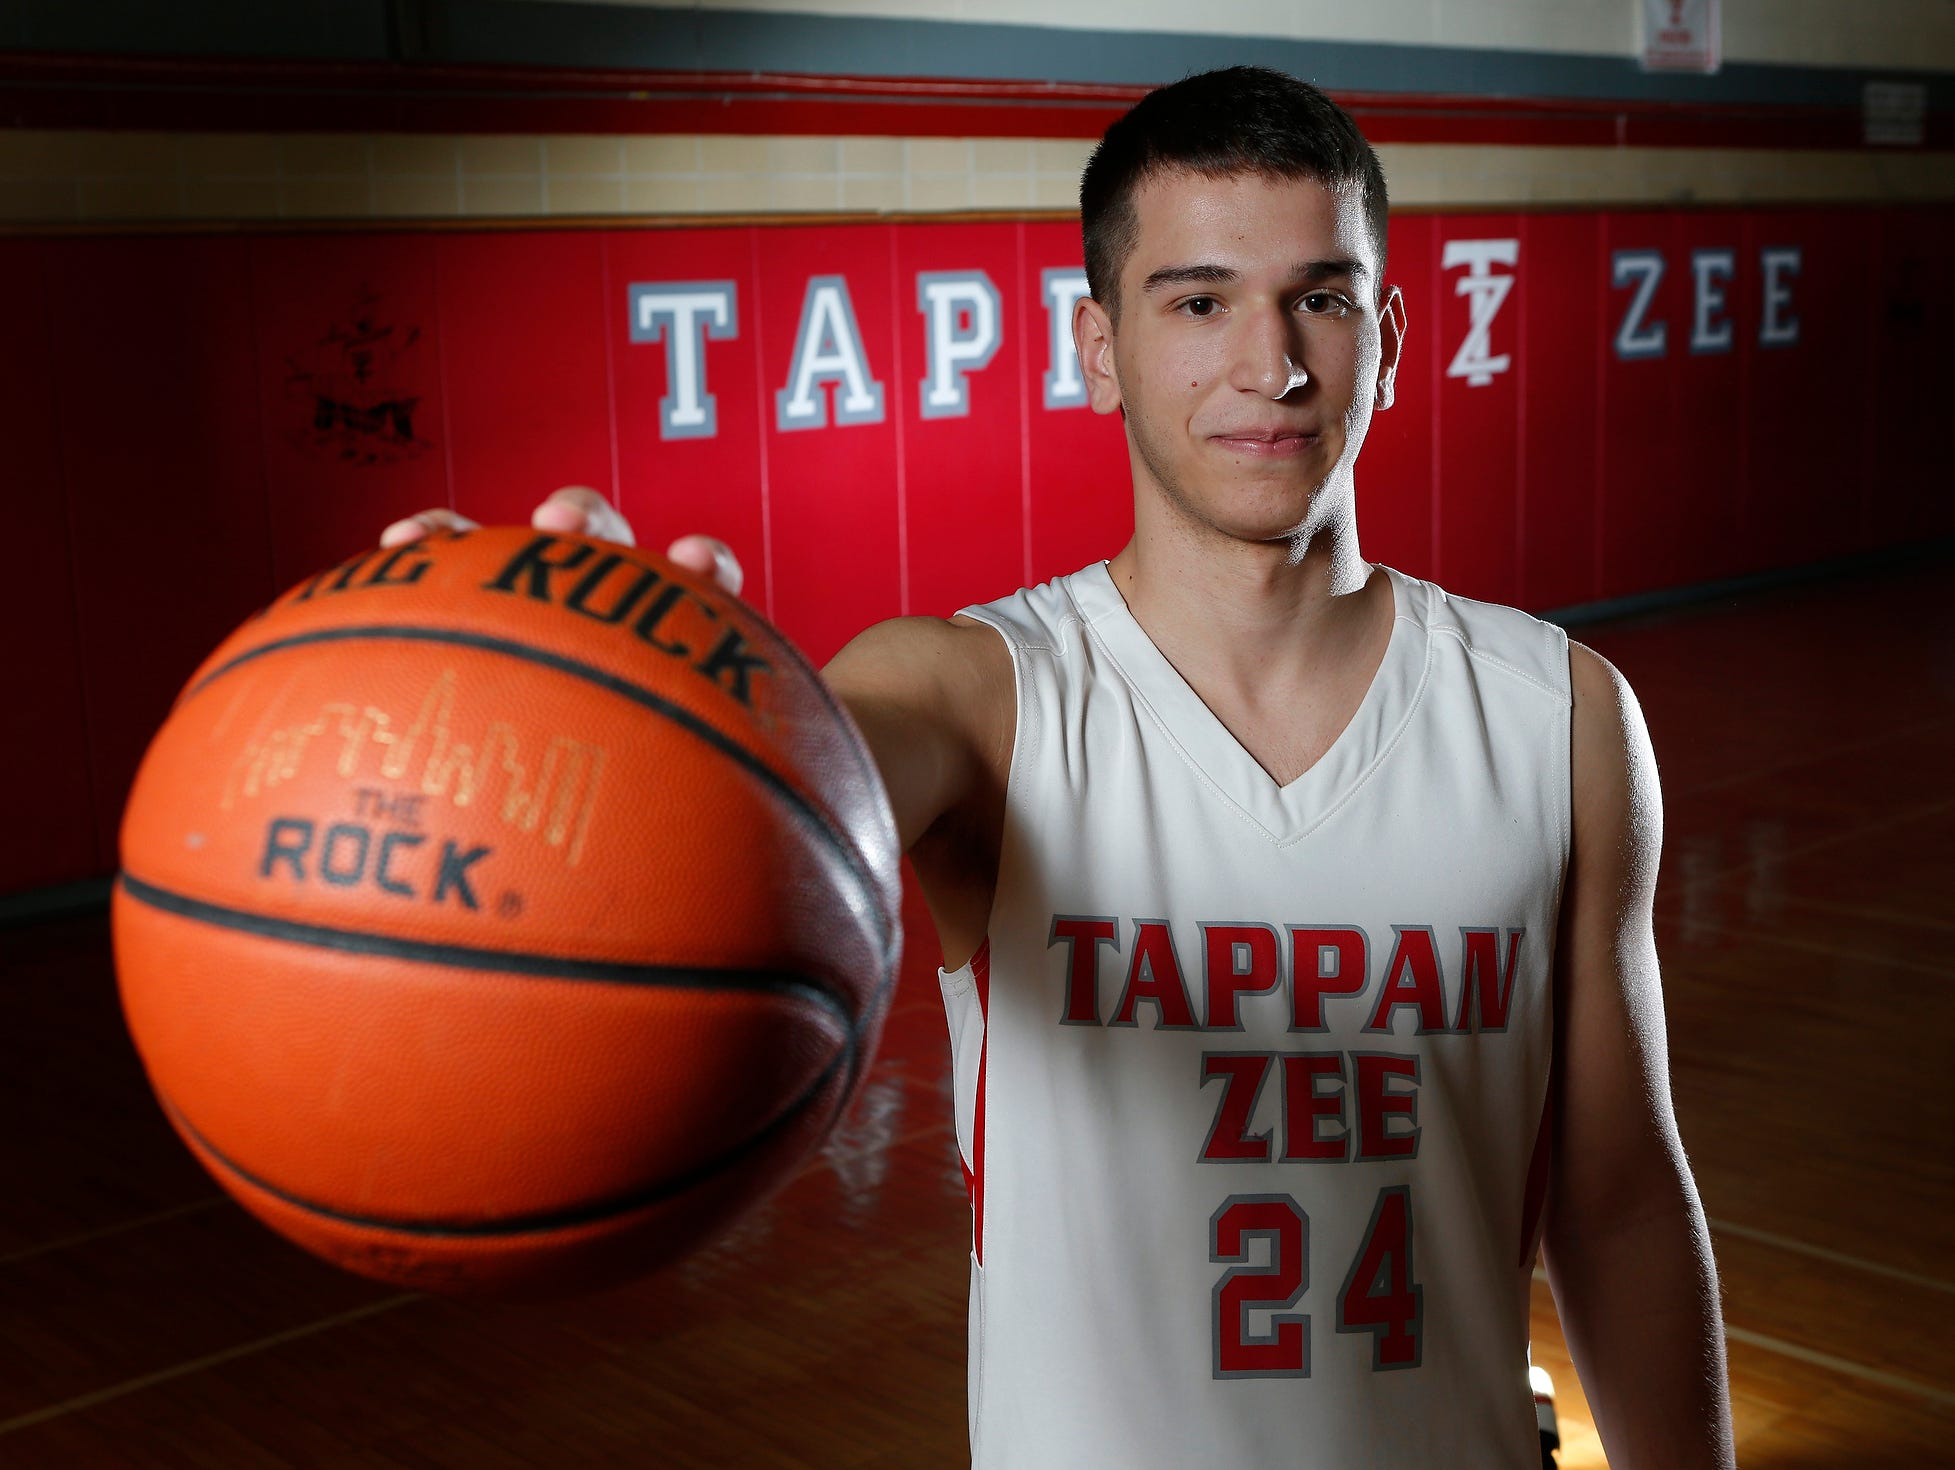 Tappan Zee senior Robert McWilliams is the Rockland County Boys Basketball Player of the Year.